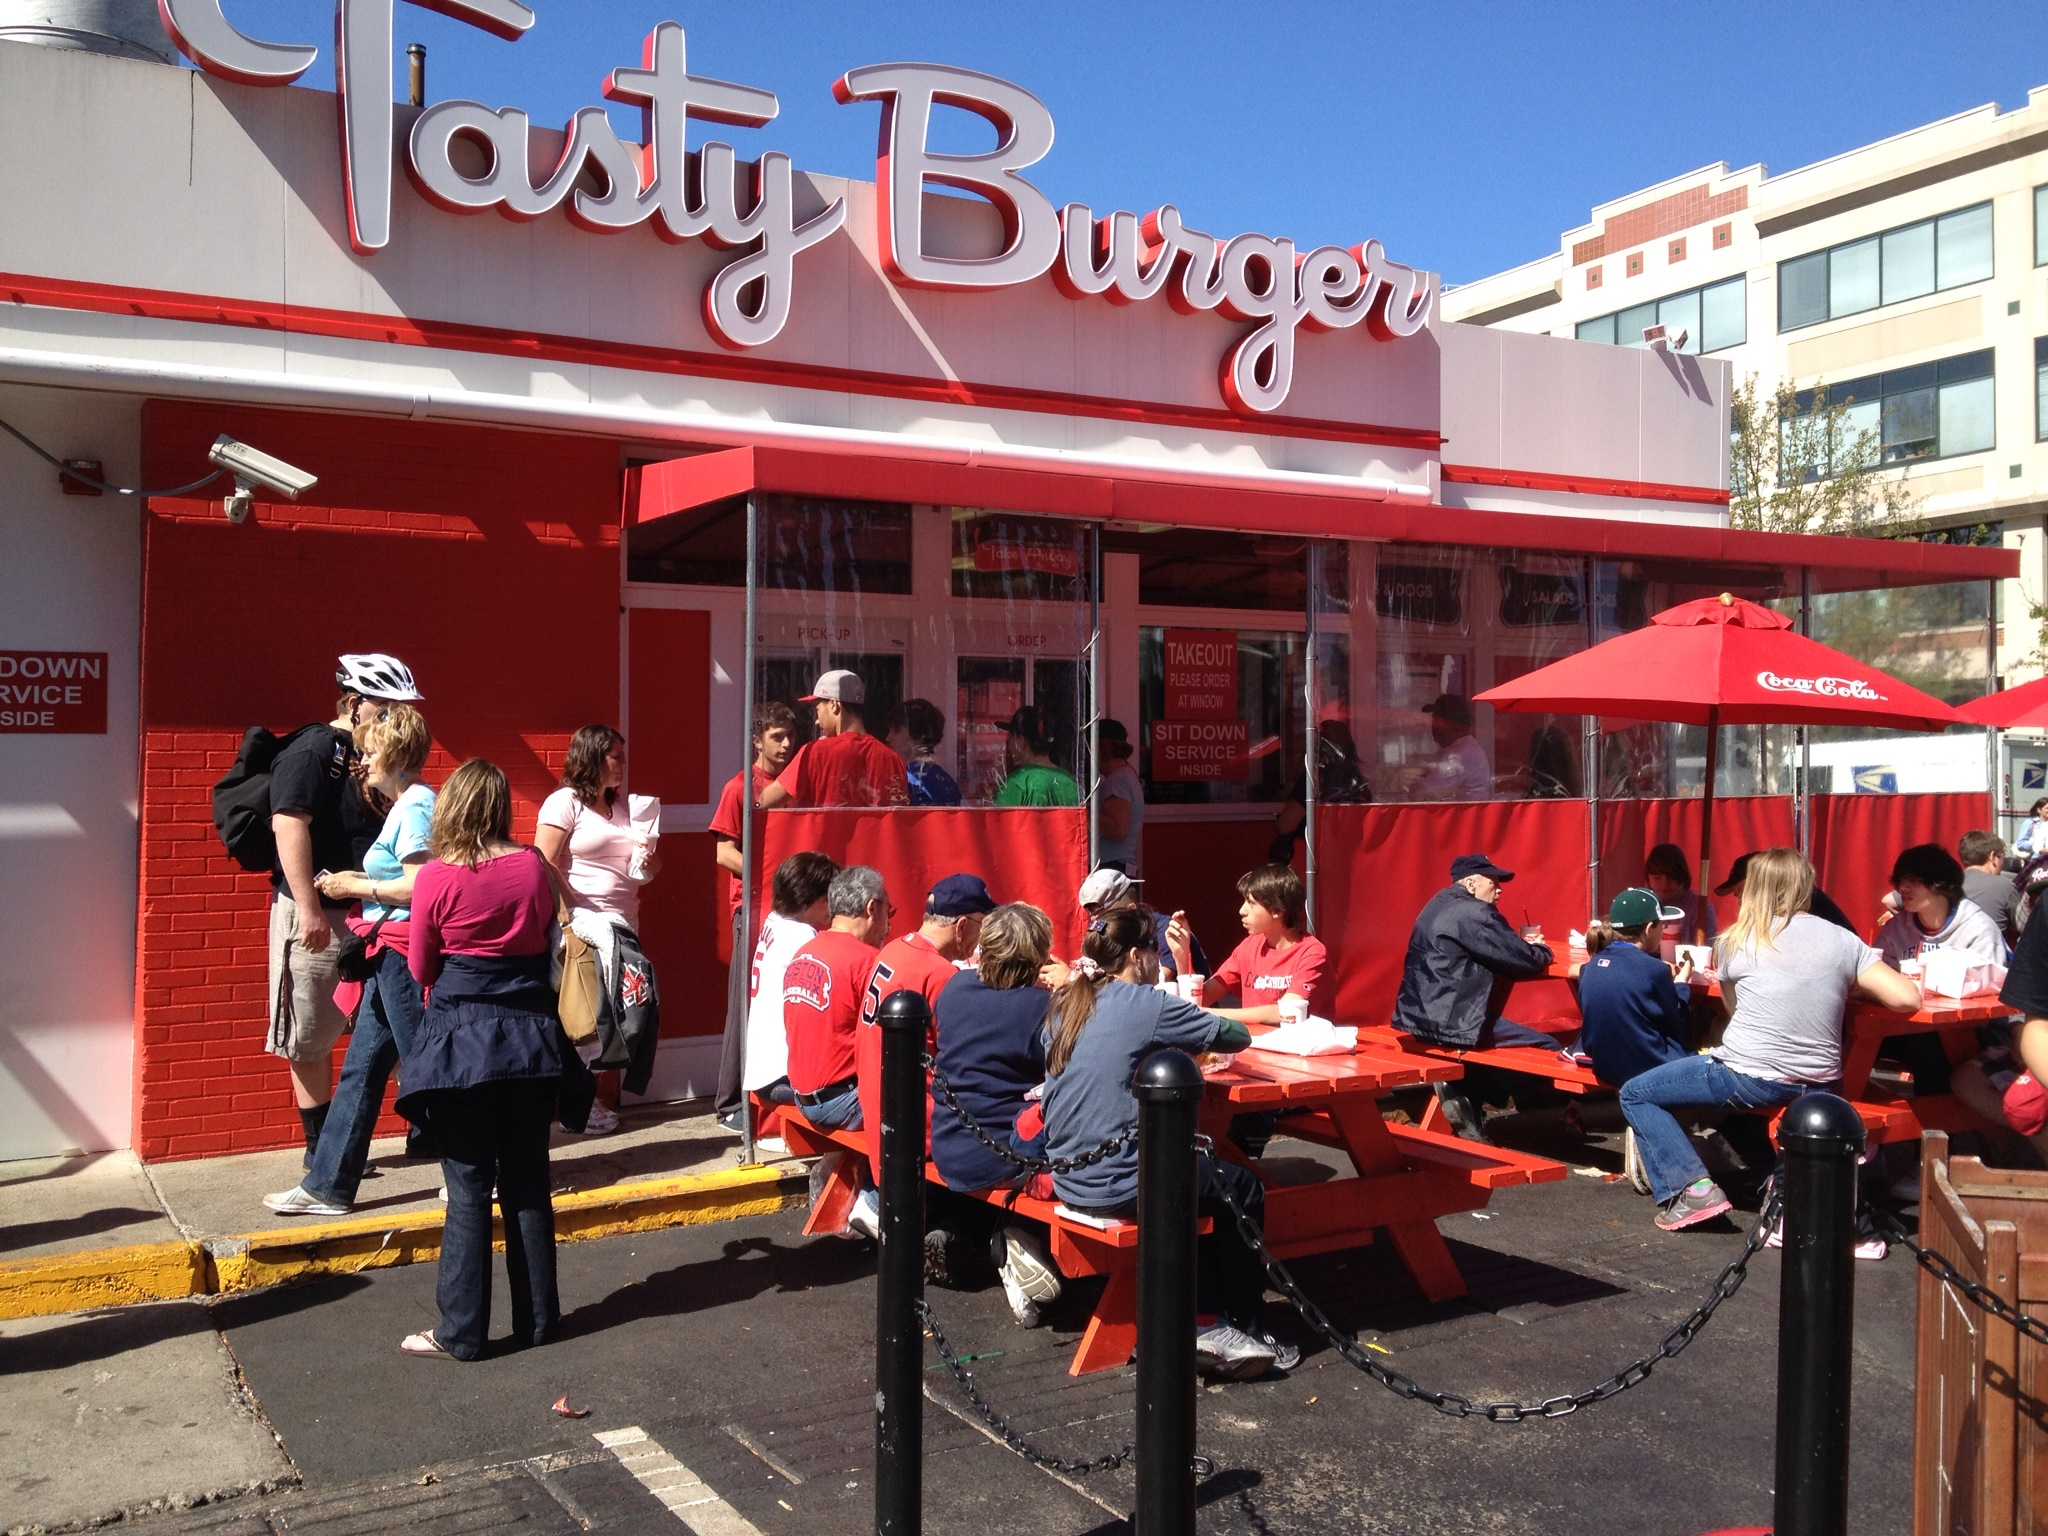 People gather on the patio at Tasty Burger Fenway, which boasts a bright red and white exterior